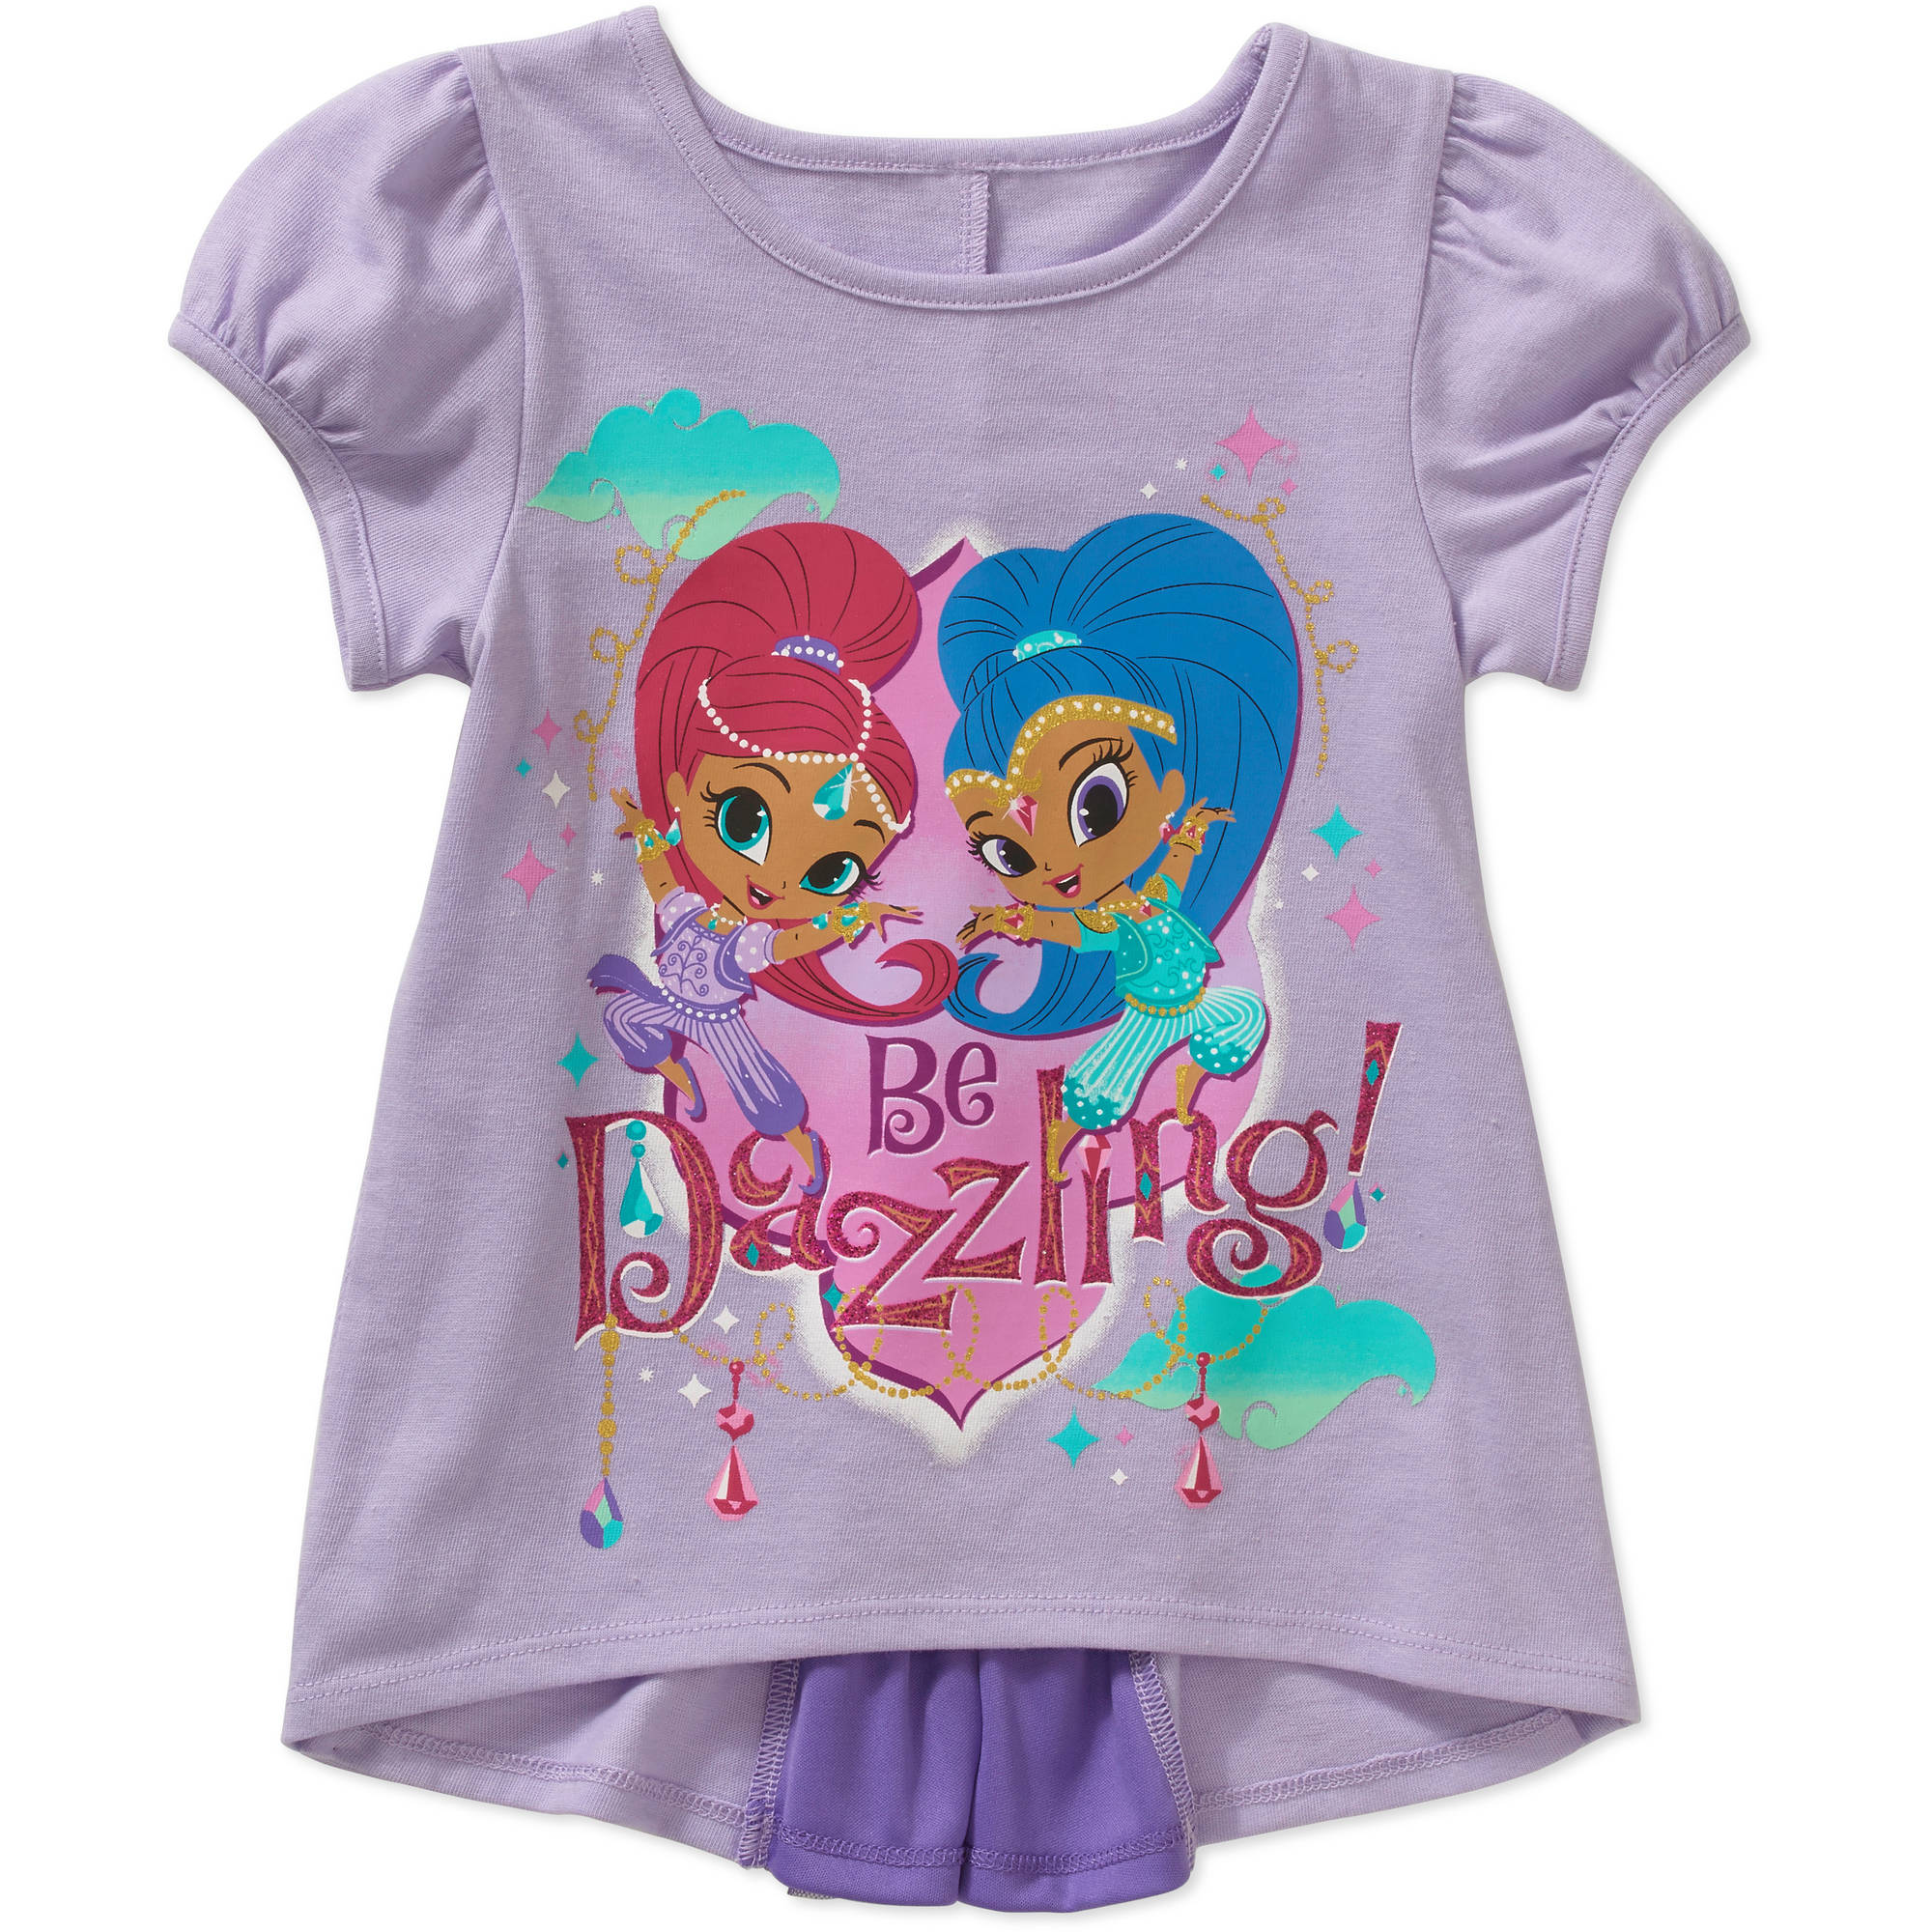 Shimmer and Shine Toddler Girl Bow Back Graphic Tee Shirt